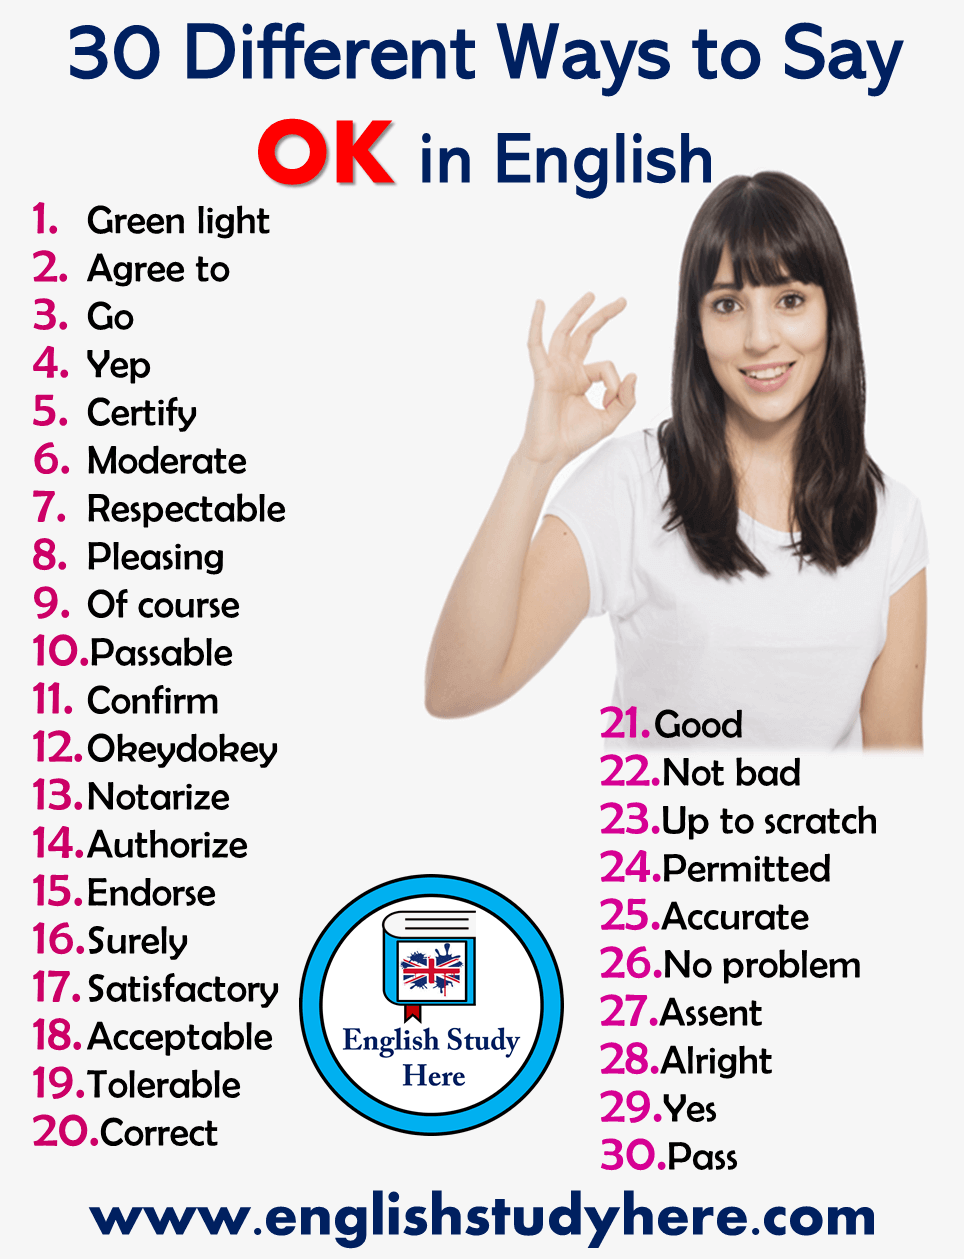 30 Different Ways to Say OK in English